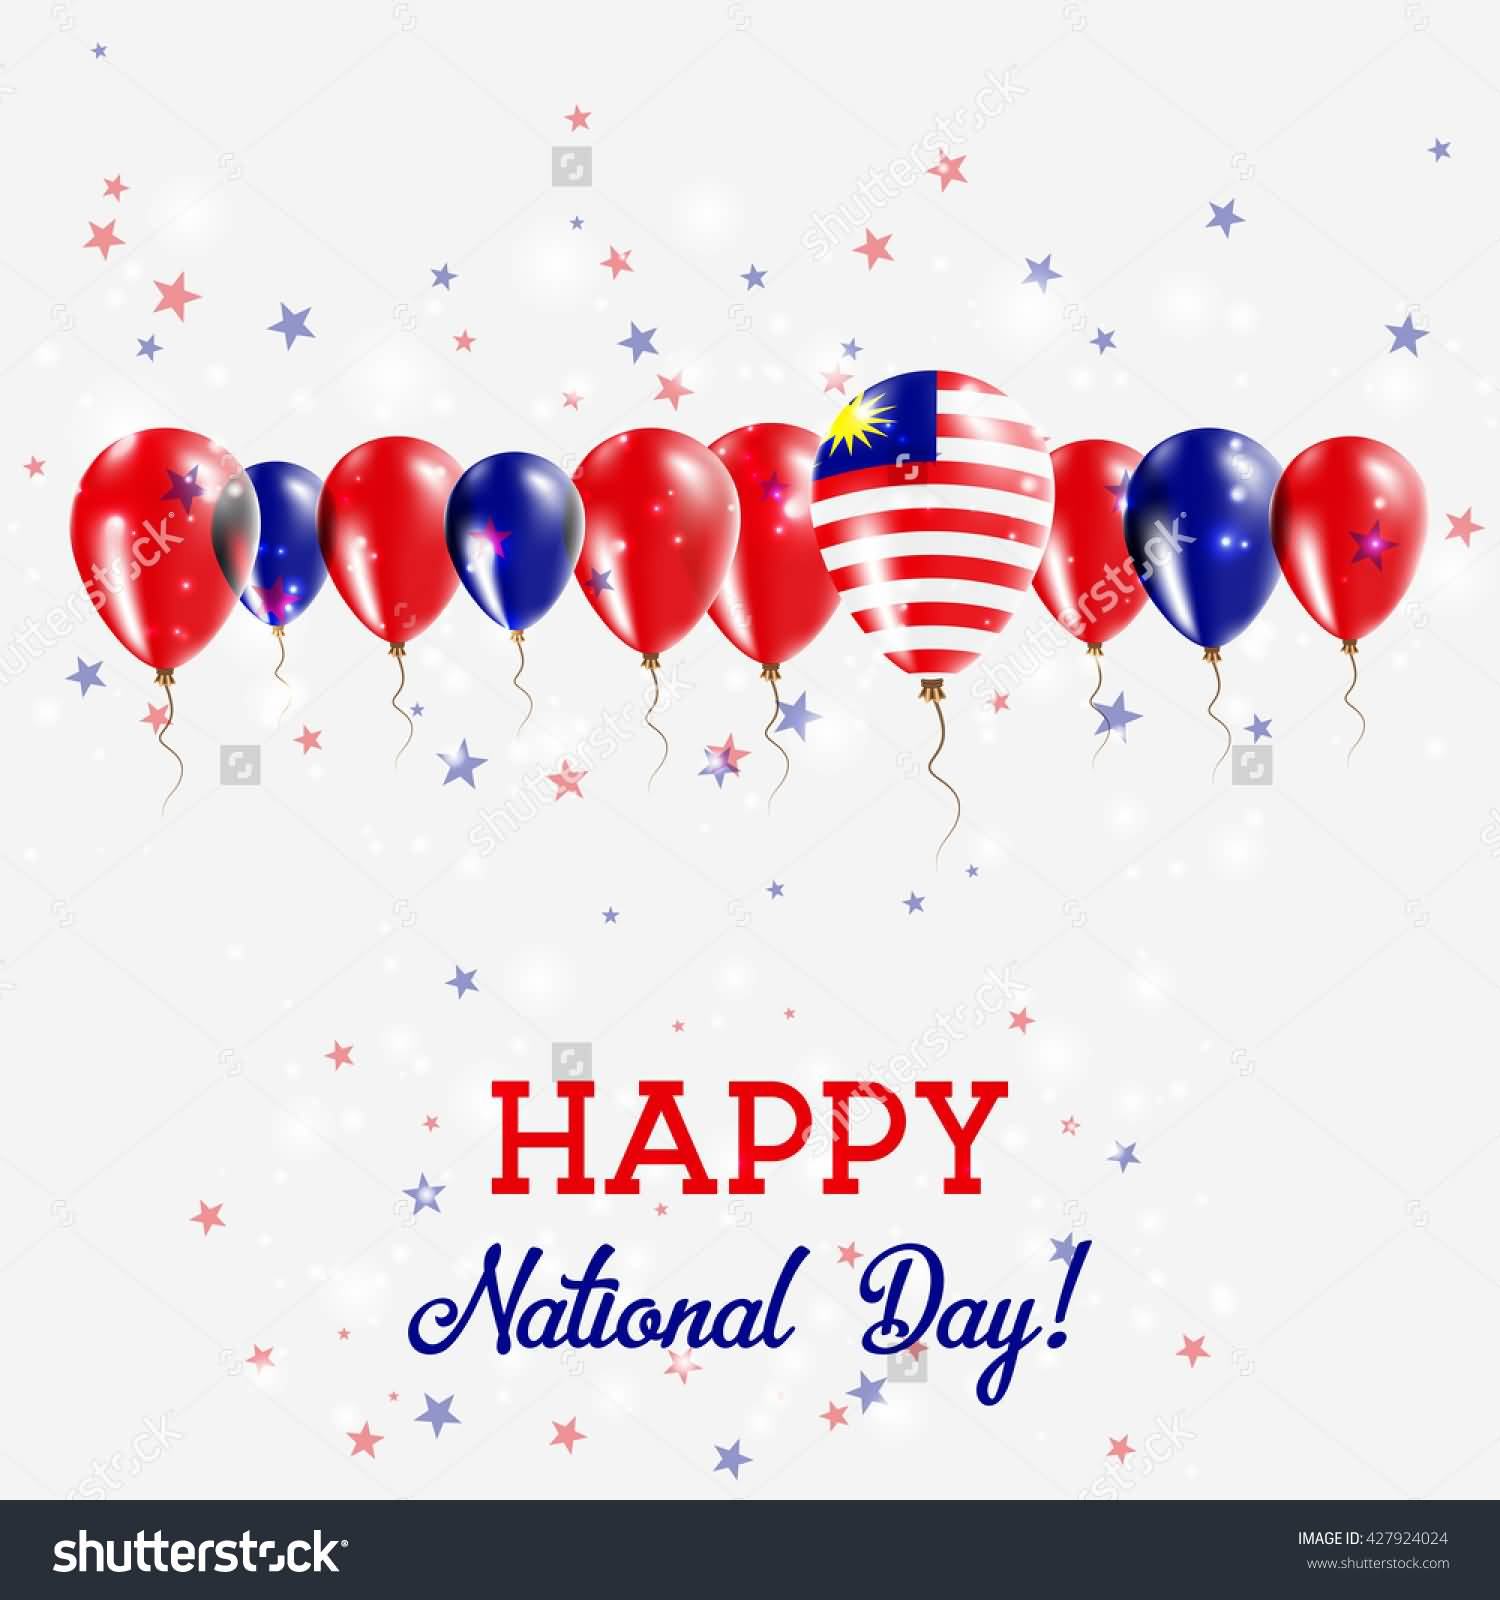 Happy National Day Malaysia Balloons Greeting Card